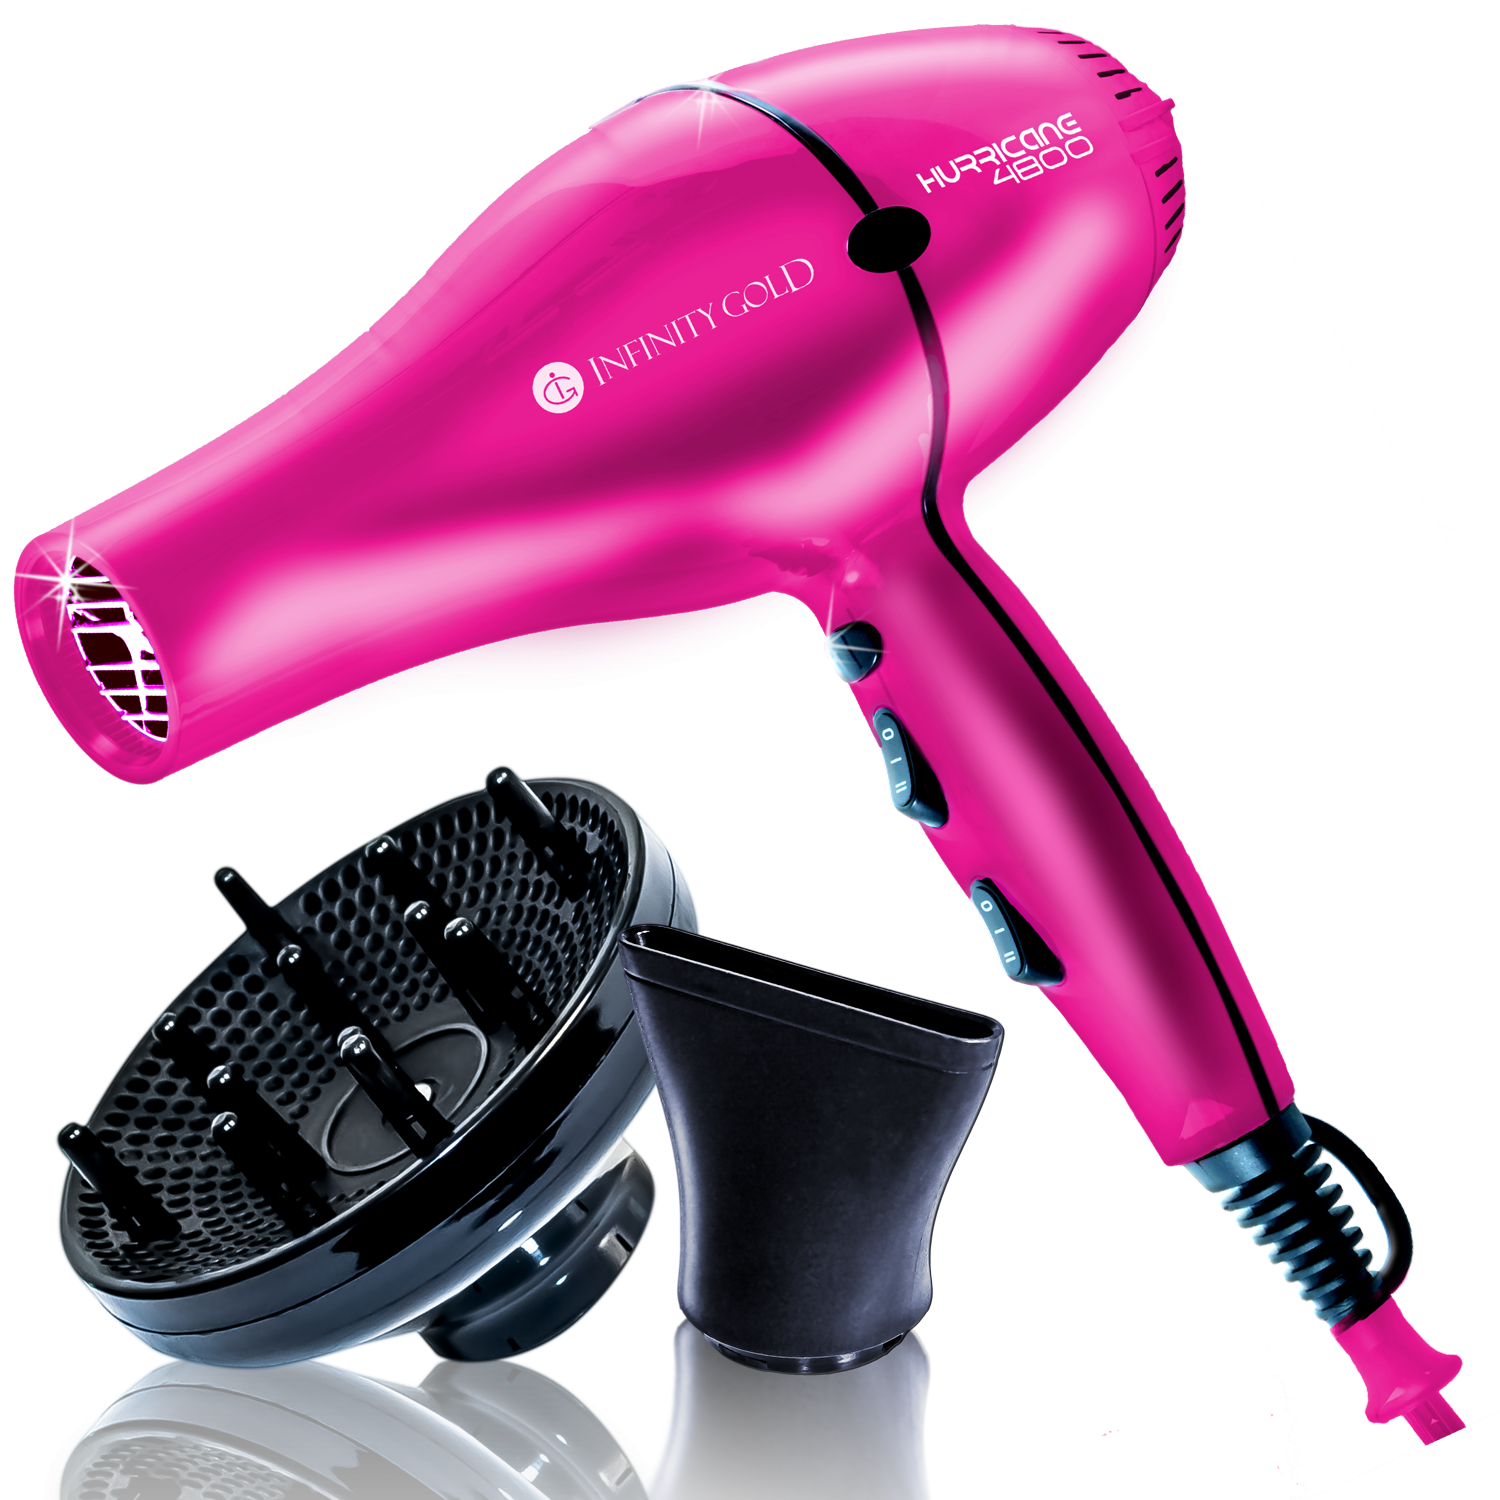 Infinity Gold Blow Dryer Ceramic Tourmaline With 1 Concentrator Diffuser Ig2p Pink Hair Dryers Pink Hair Dryer Blow Dryer Reviews Blow Dryer